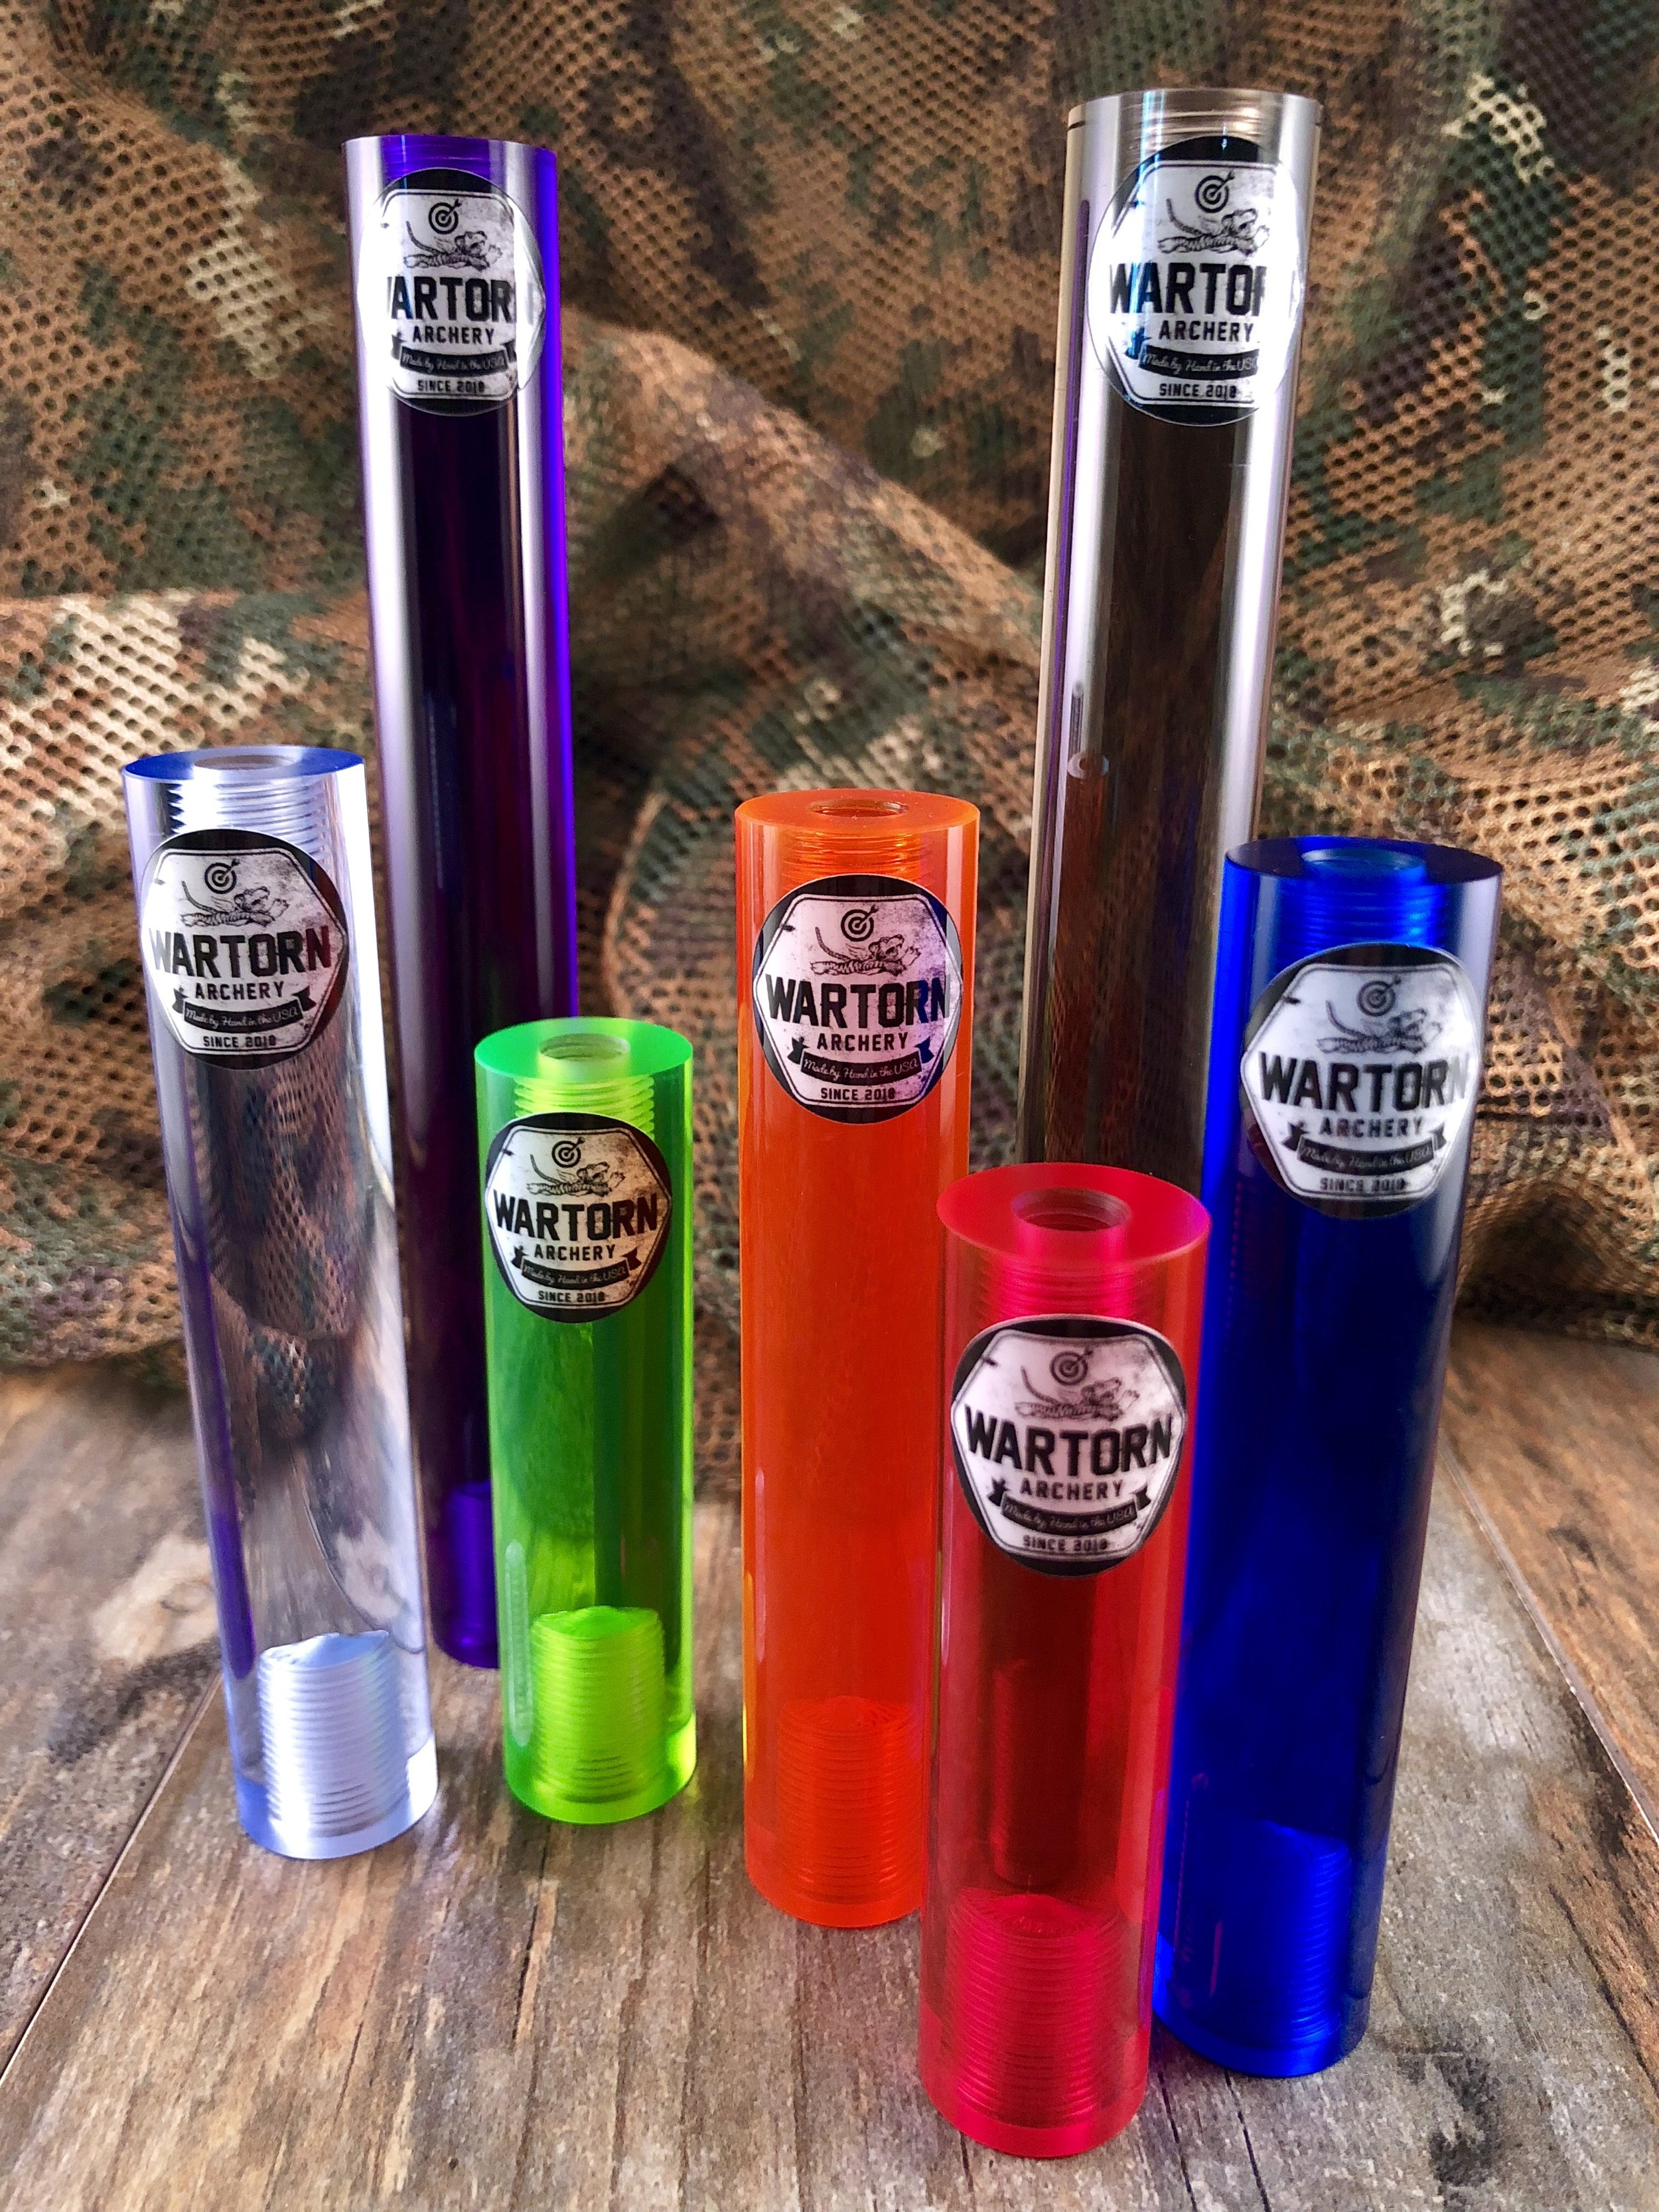 War-Torn™ CNC Cast Machined Acrylic Body - Customize your bow like never before. Pick from an array of striking transparent colors made from strong, cast, machined acrylic. Cut in standard lengths of 3